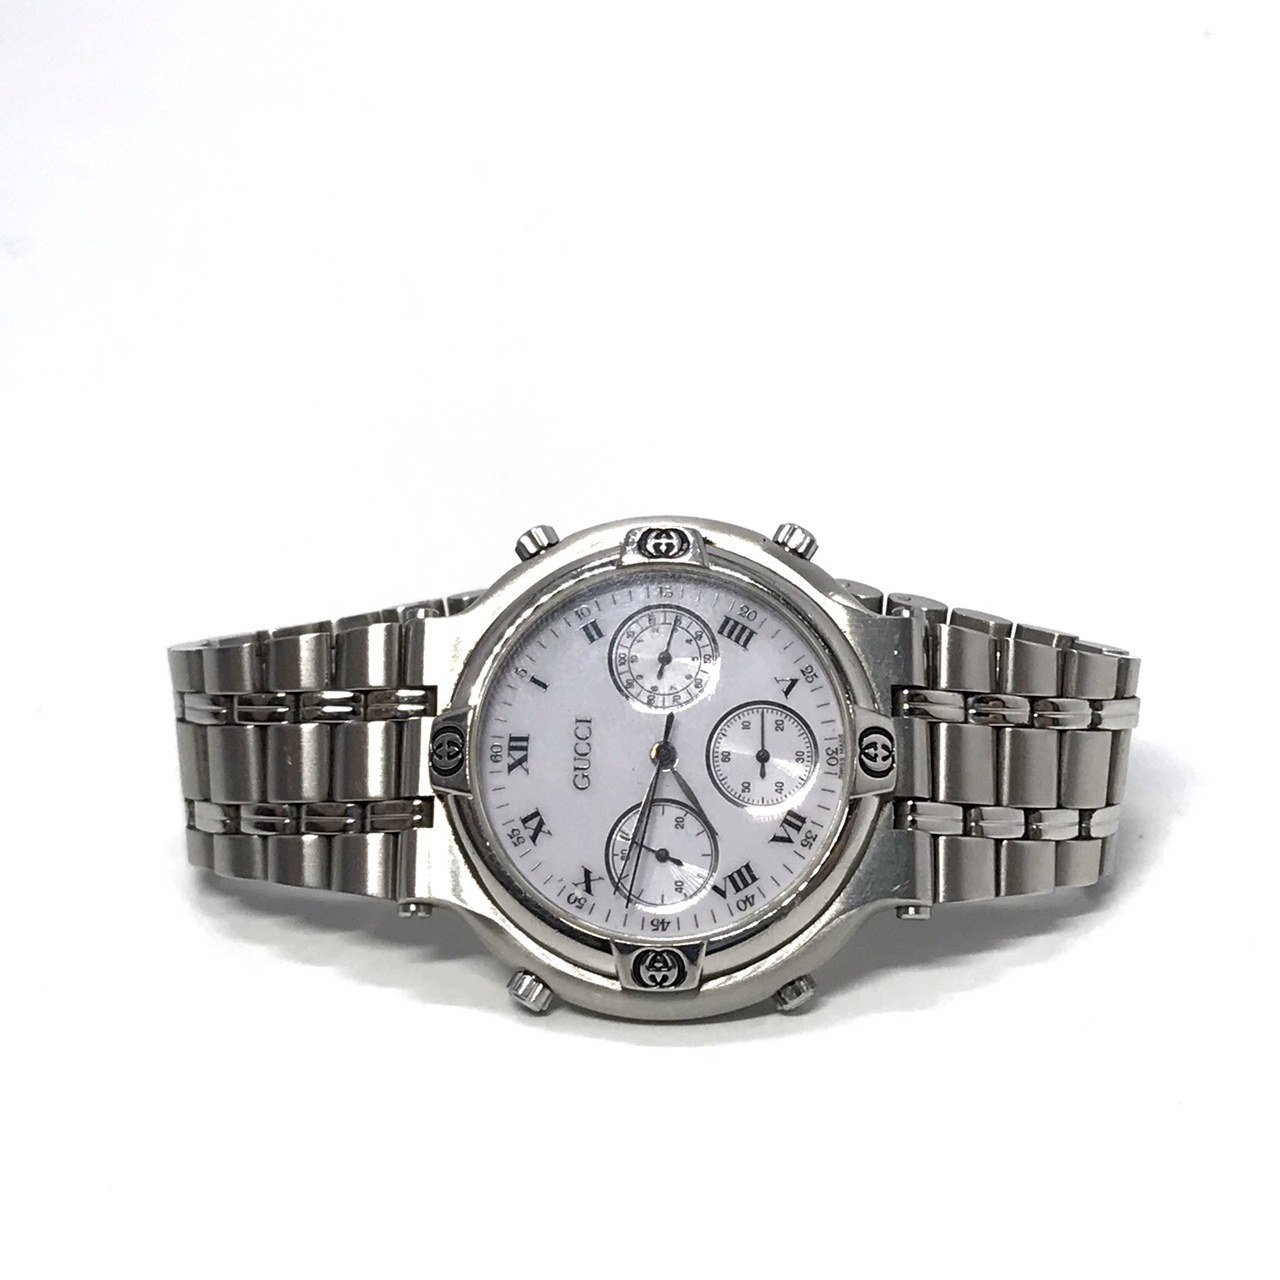 Used Gucci Men Watch 40 mm in Silver Hardware/White Dial